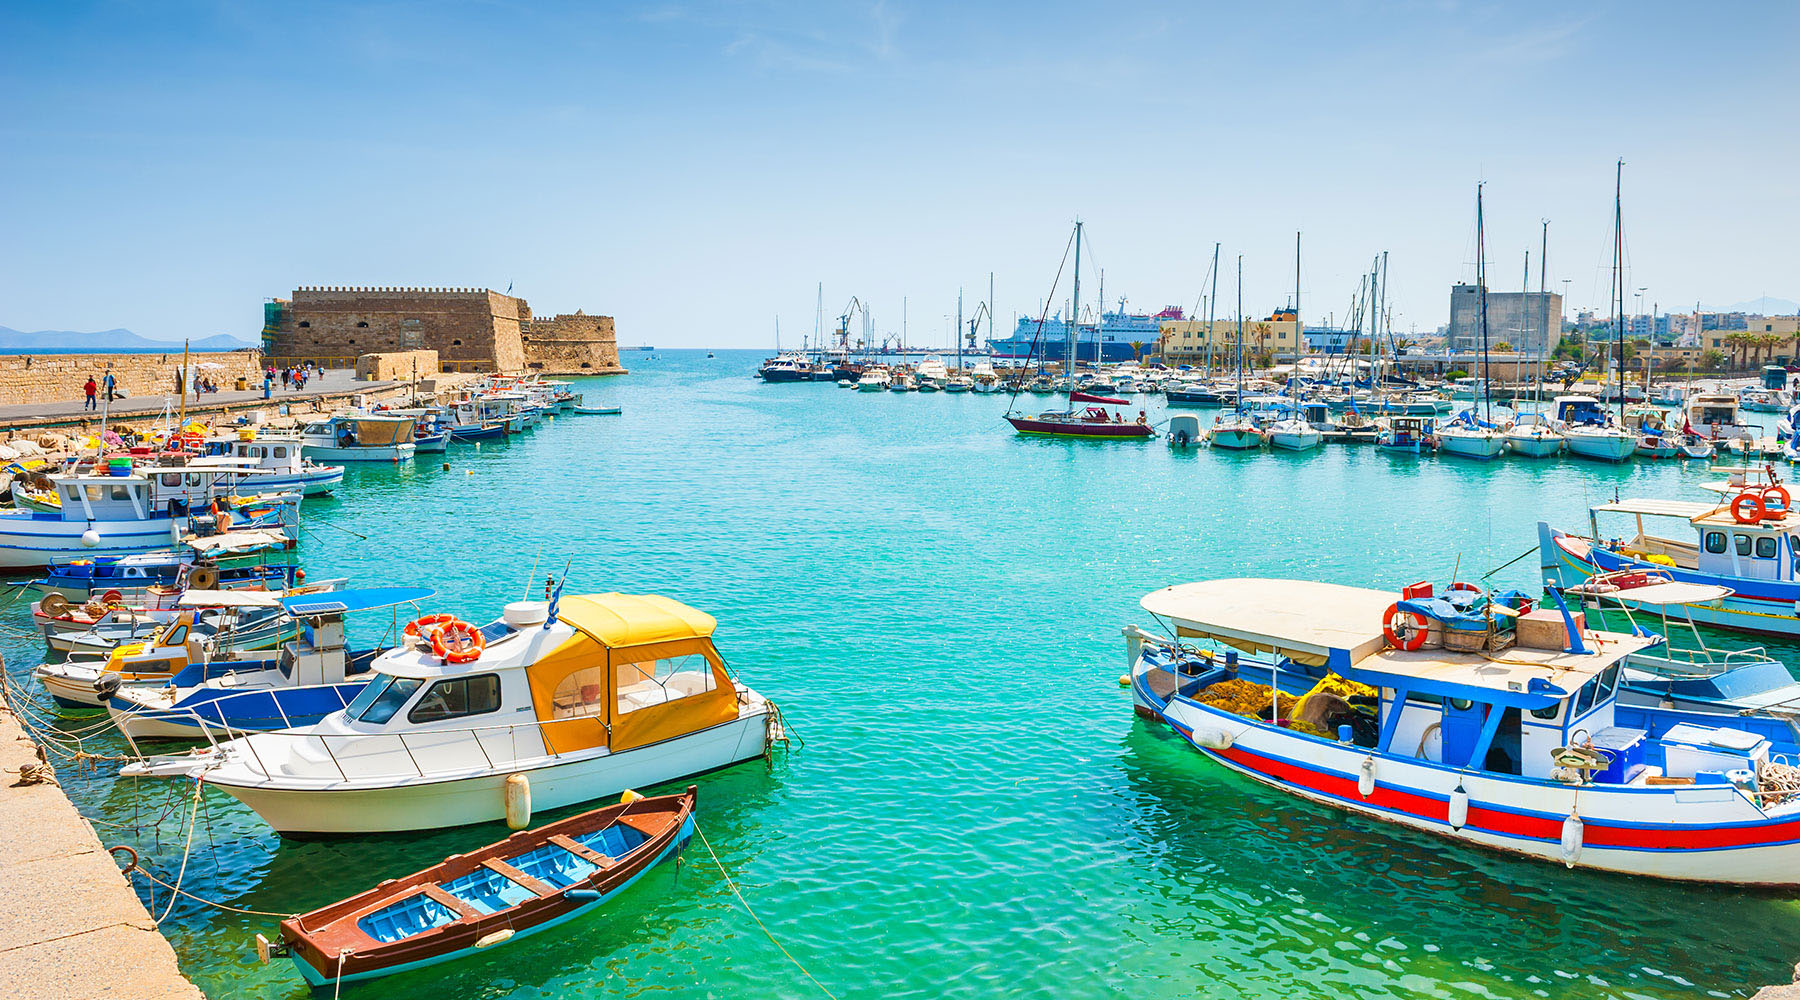 Heraklion (Iraklion), Greece Cruises